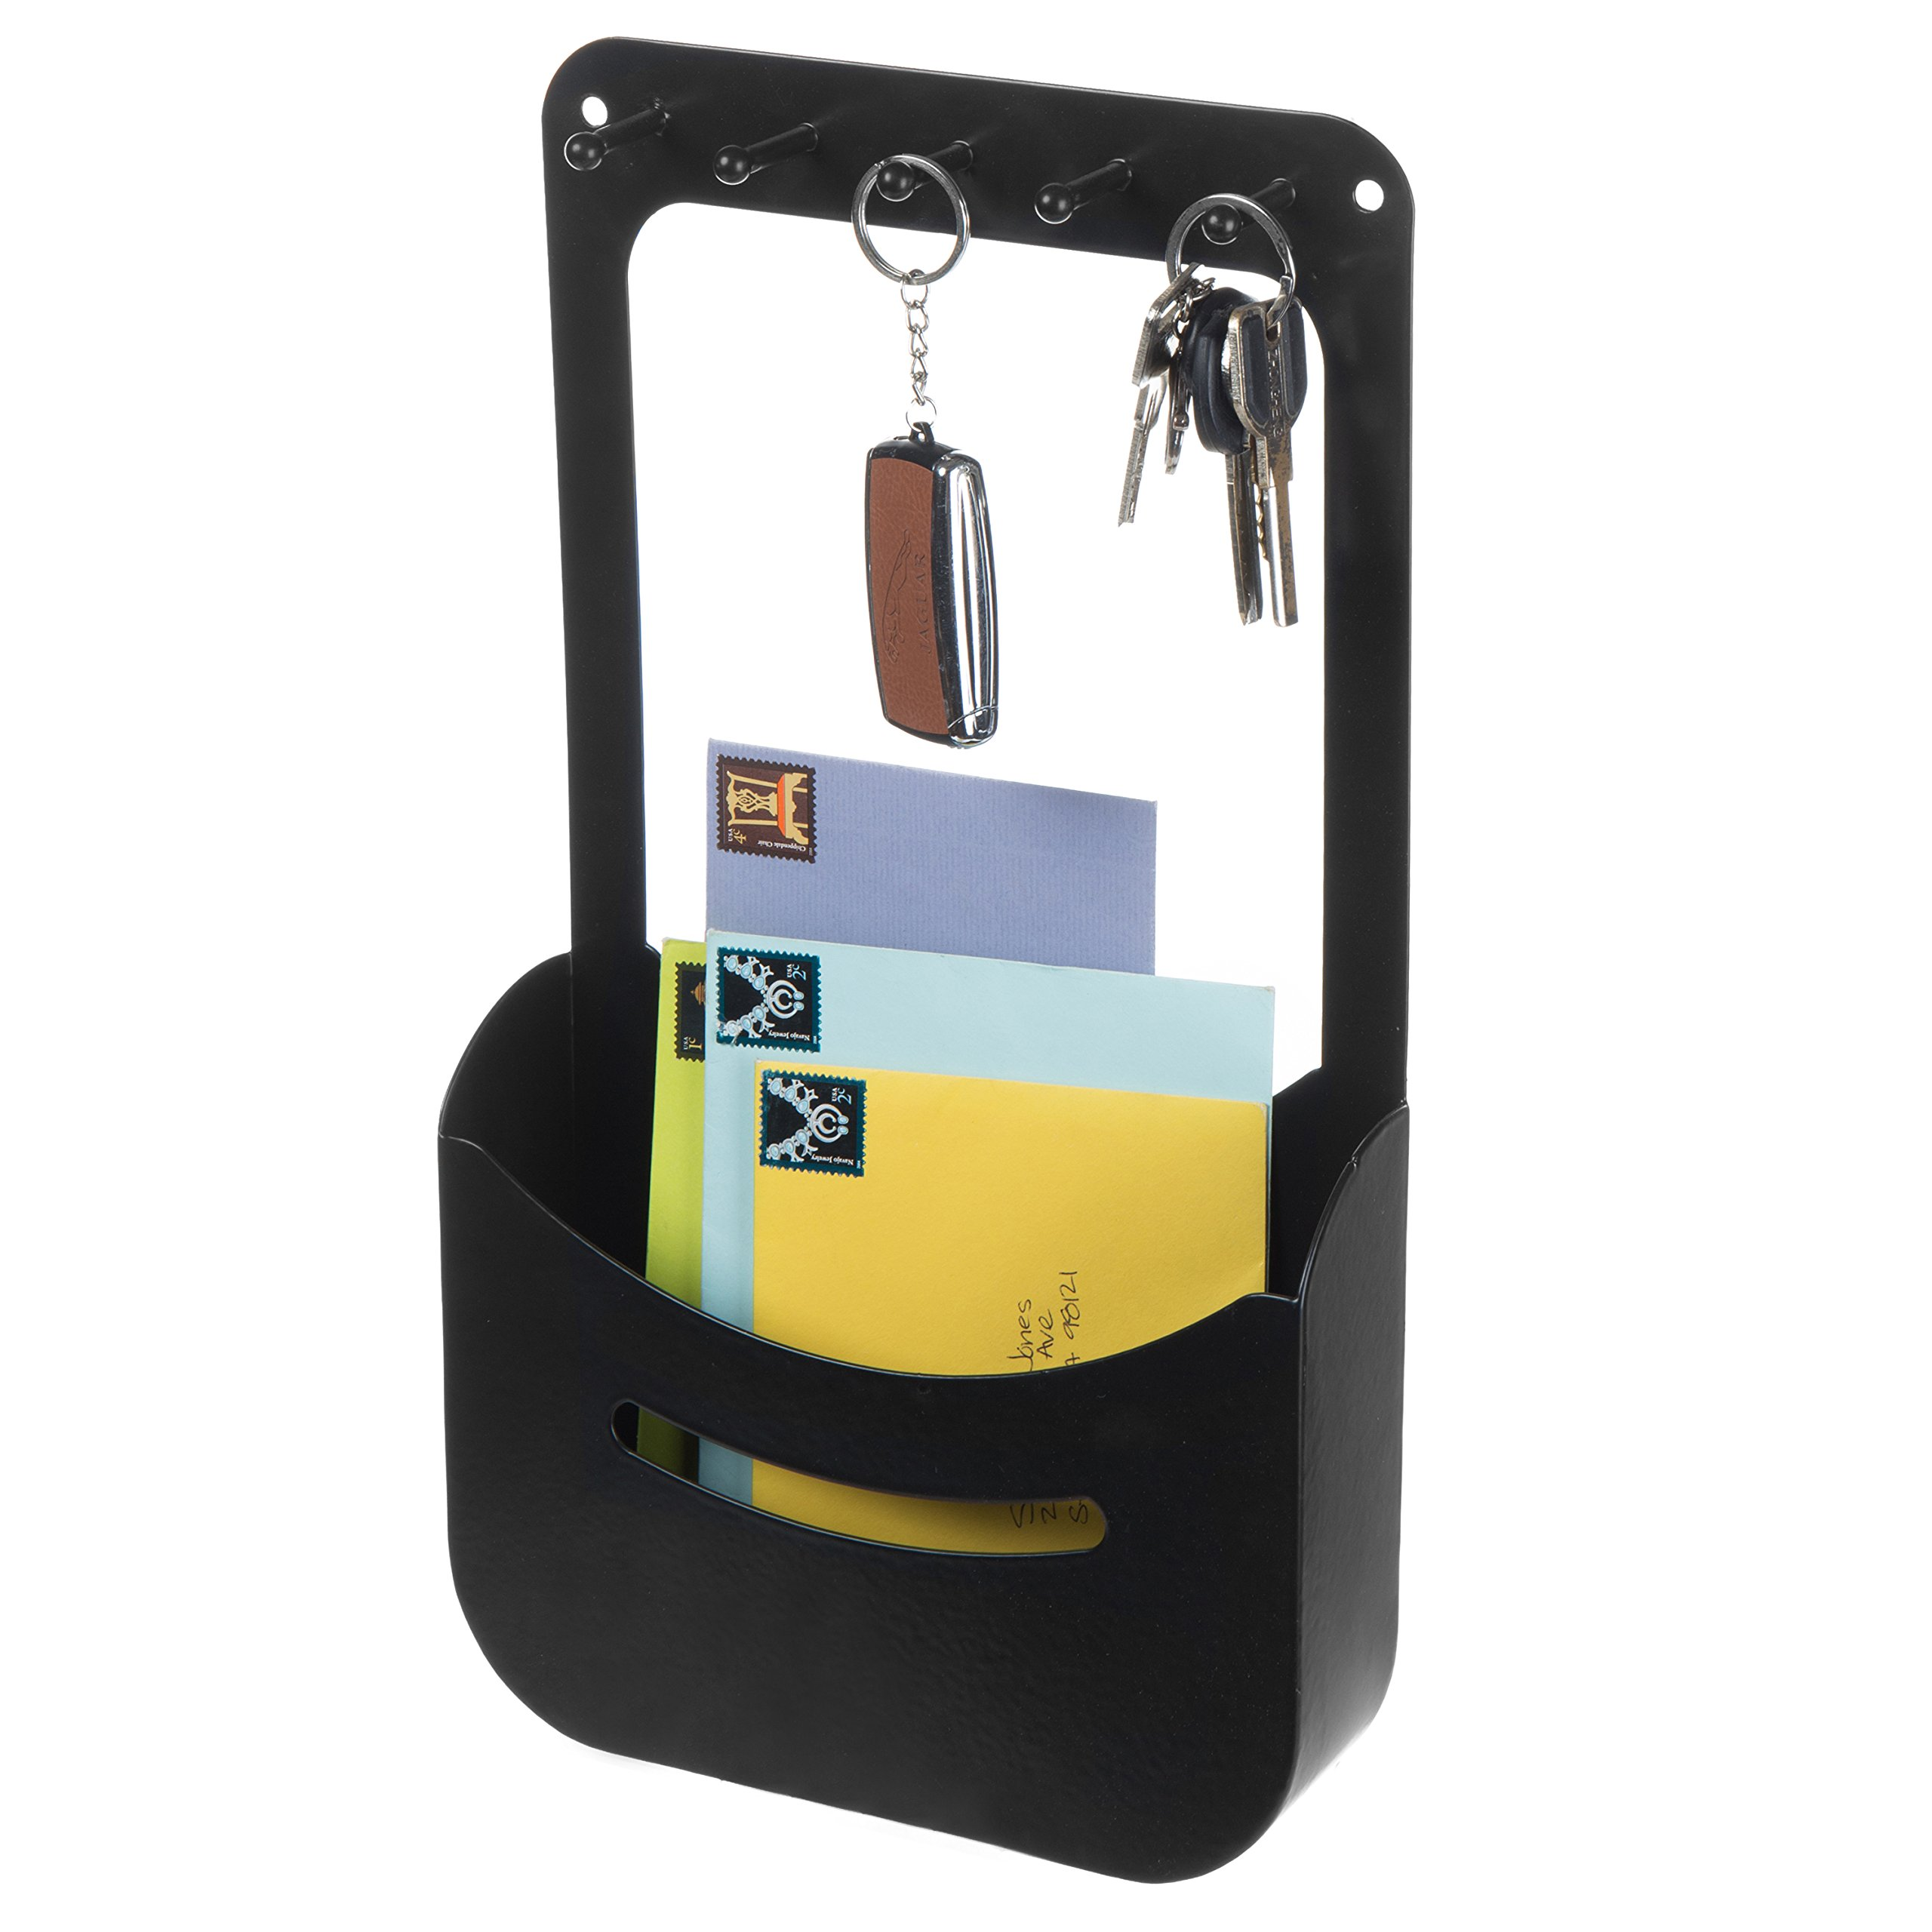 MyGift Modern Black Metal Wall-Mounted Mail Holder with 5 Key Hooks